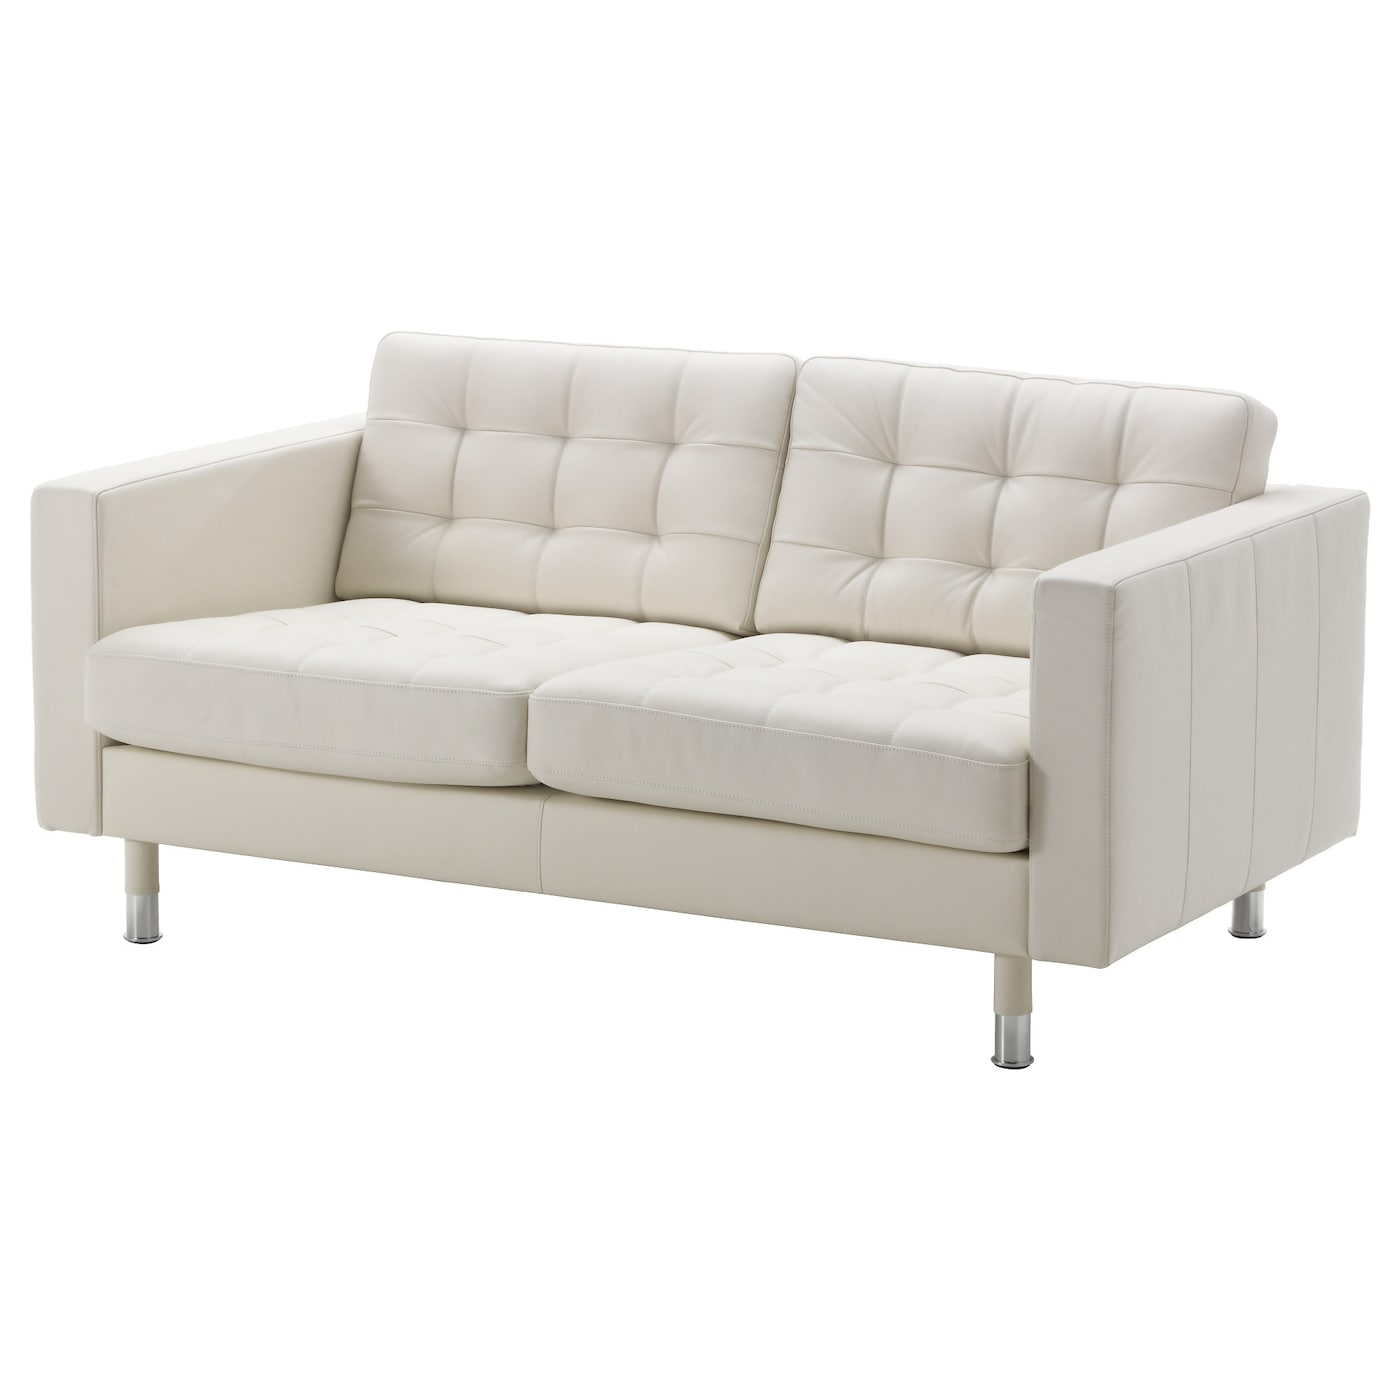 Landskrona two seat sofa grann bomstad white metal ikea for White divan chair